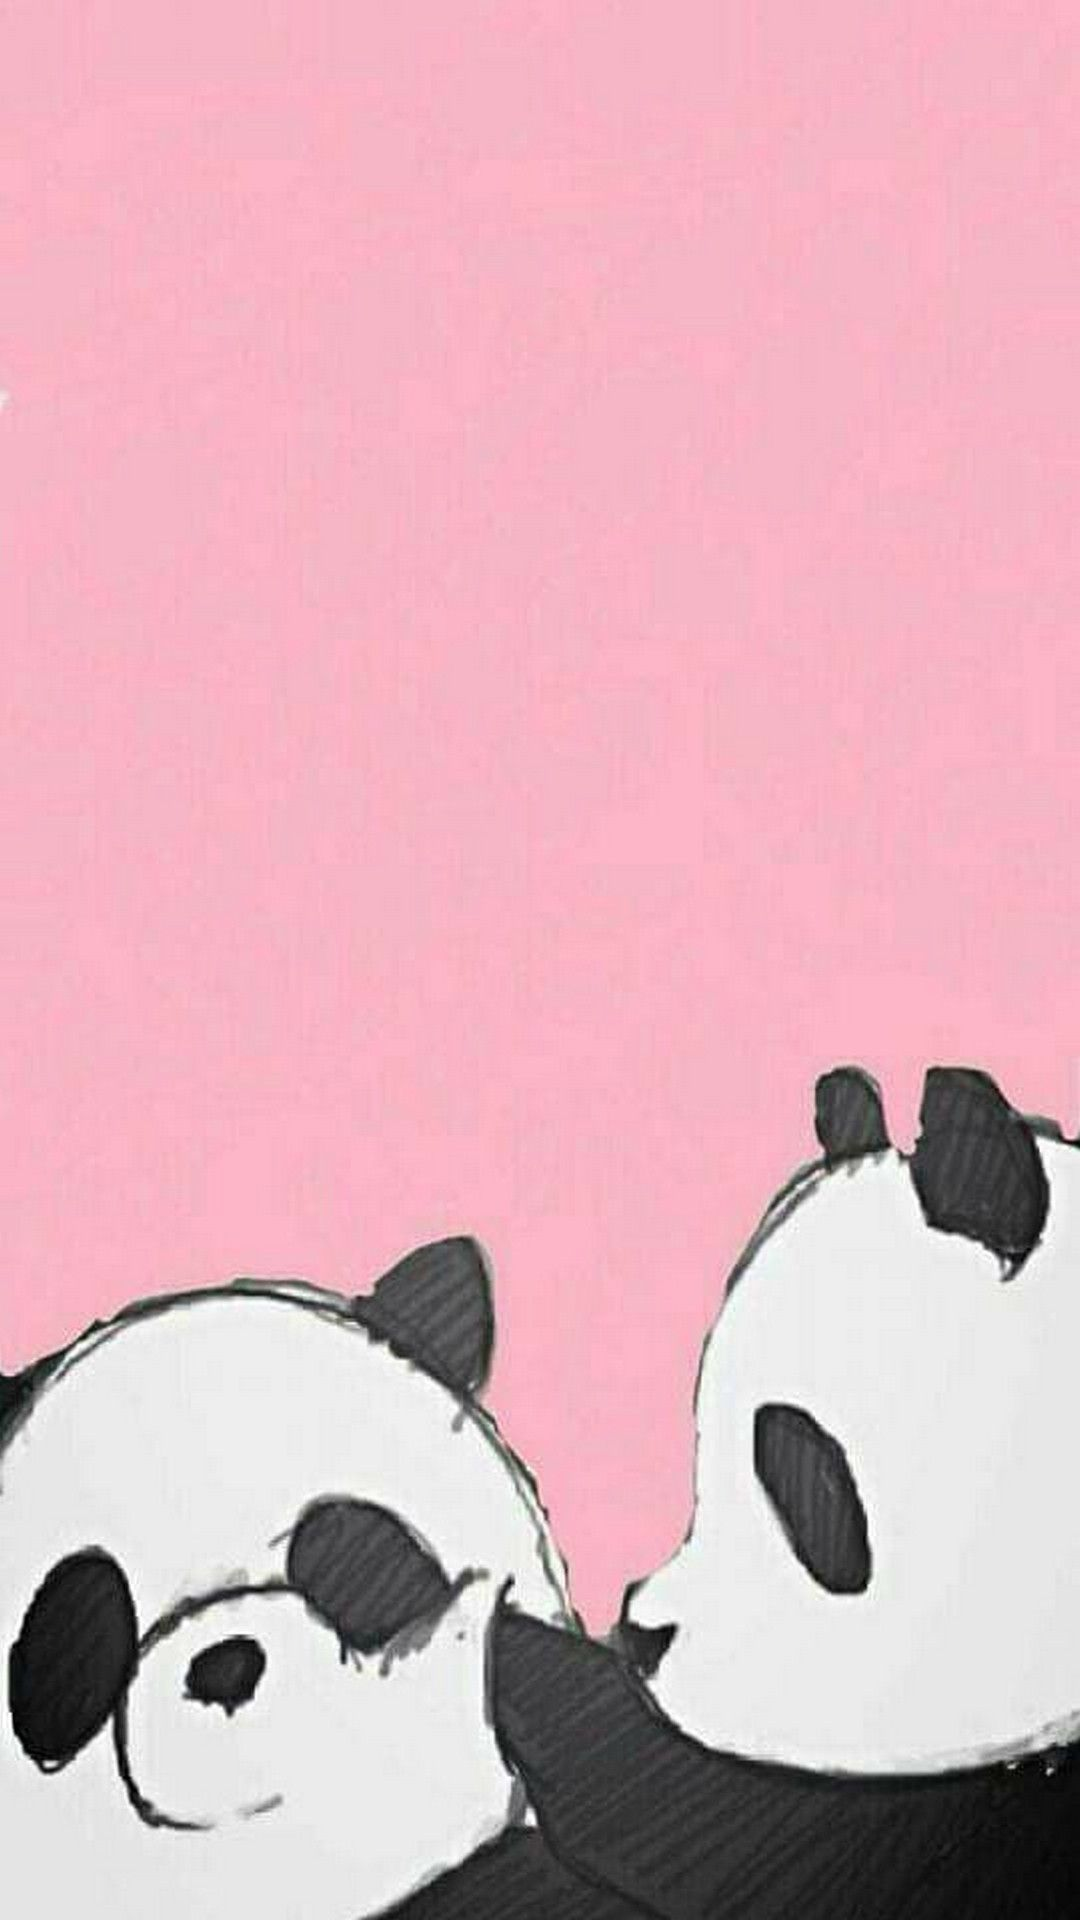 Panda Wallpaper For Mobile Android Best Hd Wallpapers